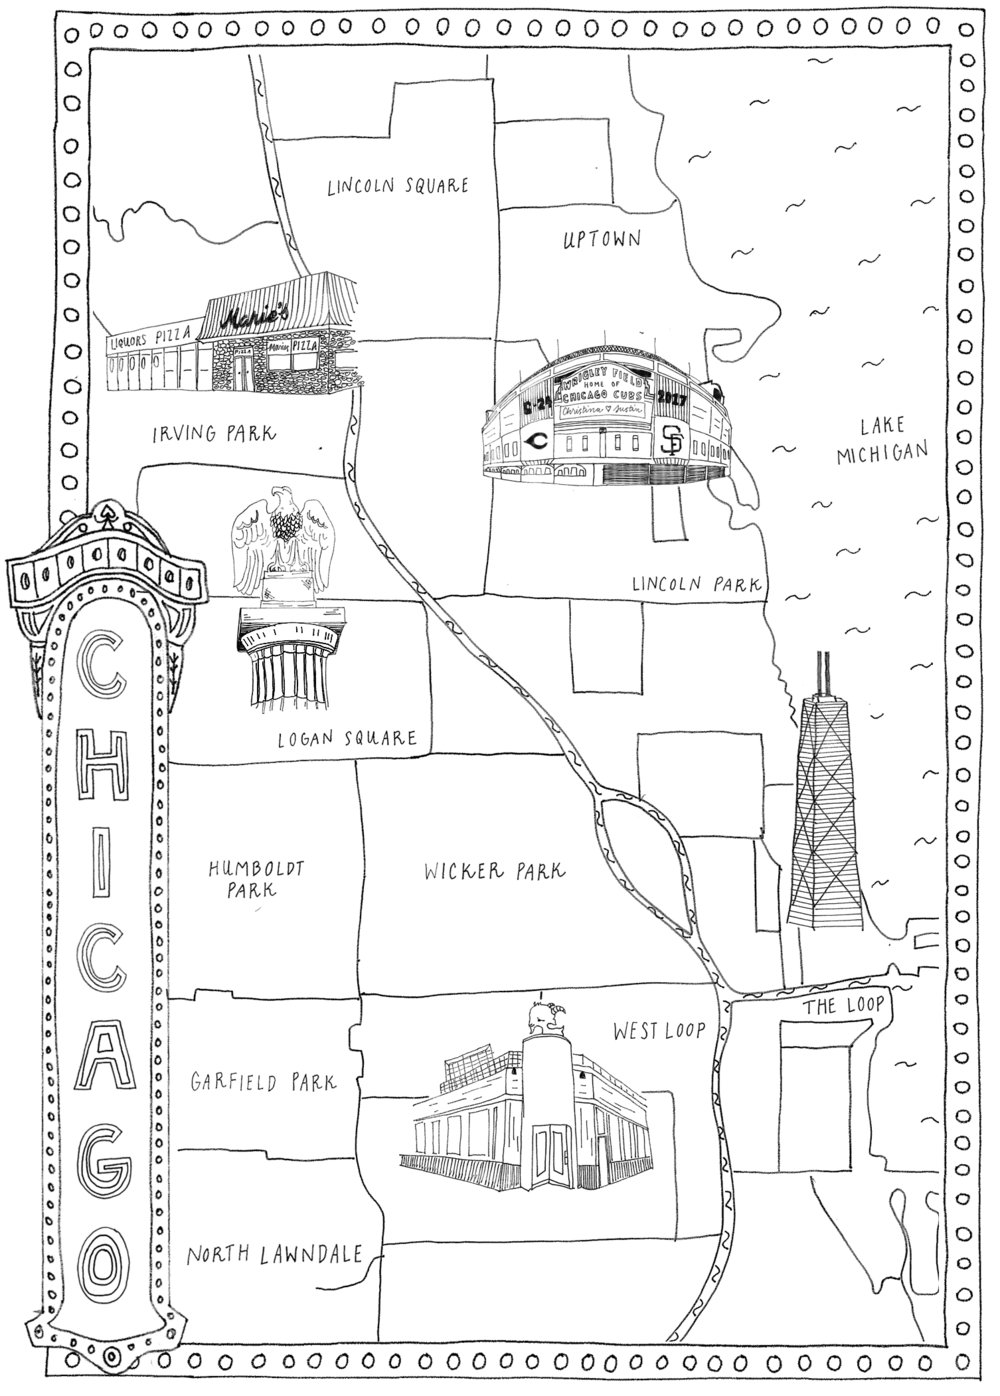 Wedding Map, Chicago